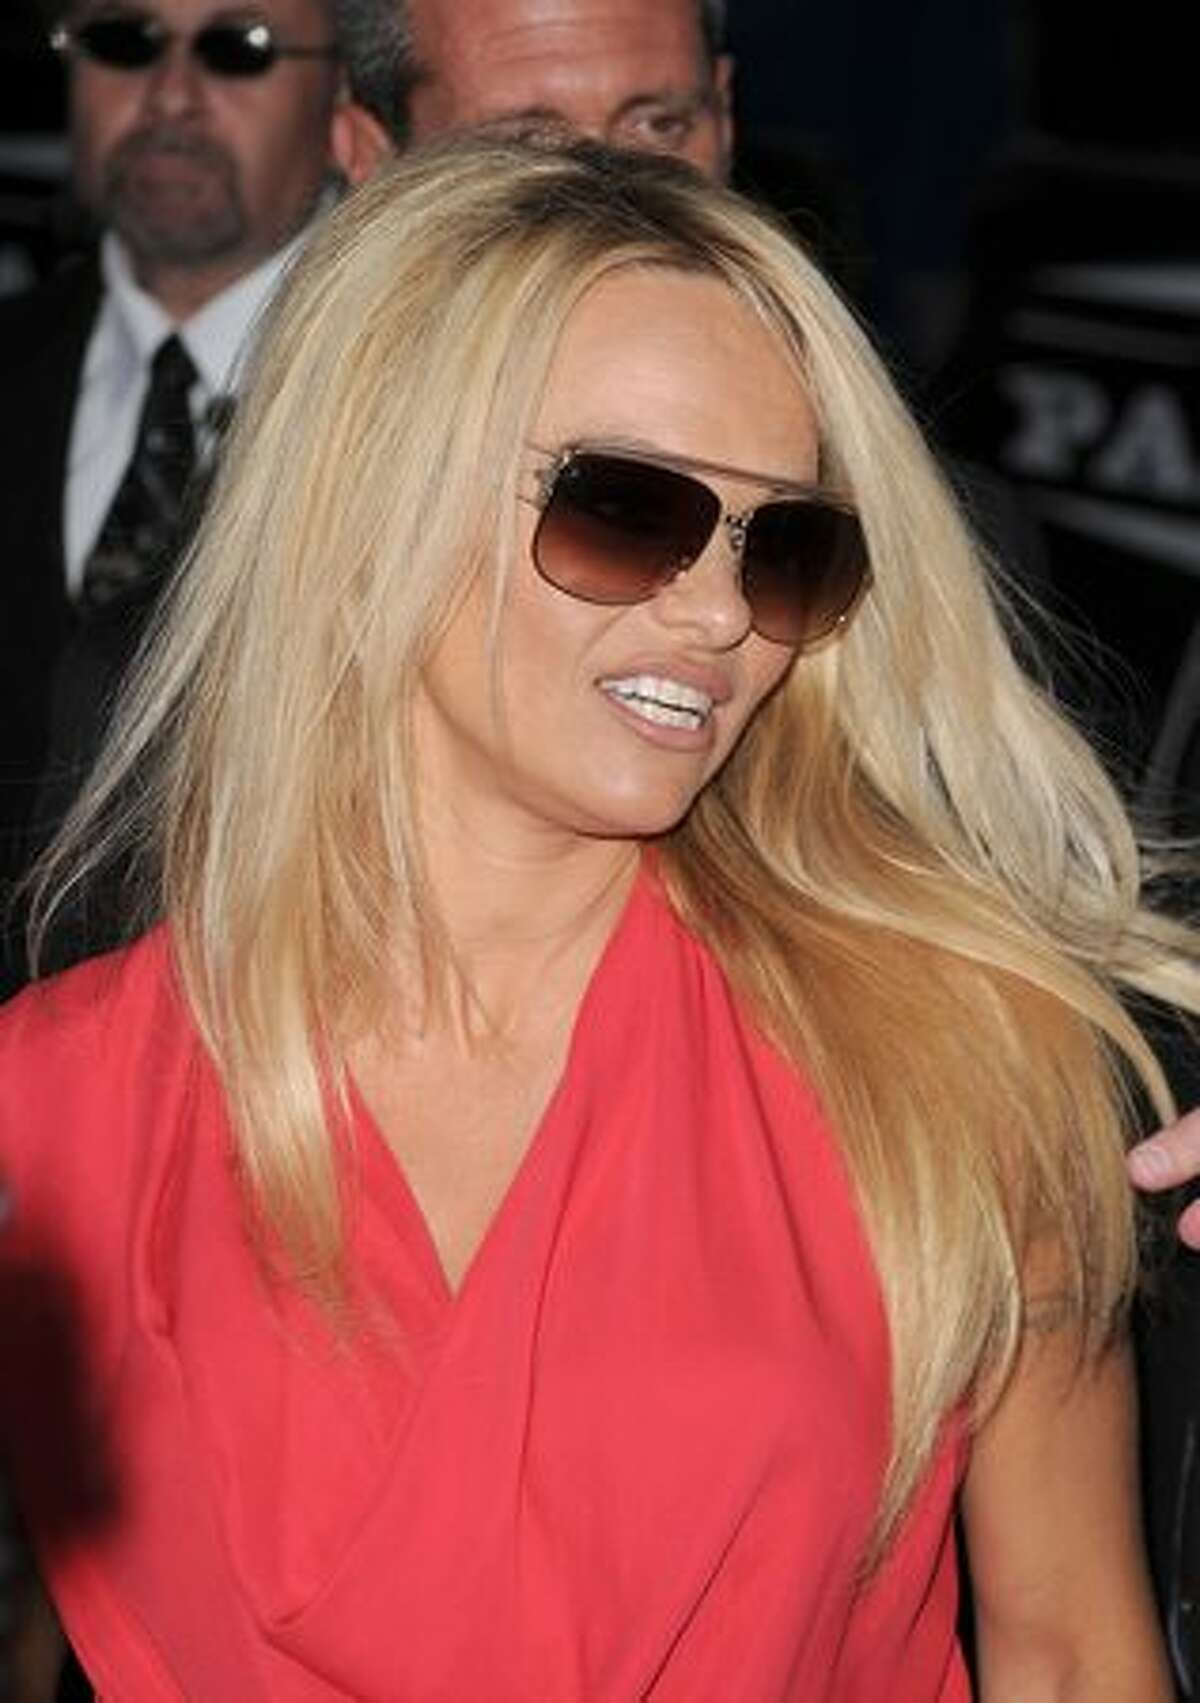 Actress Pamela Anderson arrives at PETA's 30th Anniversary Gala and Humanitarian Awards at The Hollywood Palladium in Los Angeles on Saturday, Sept. 25, 2010.